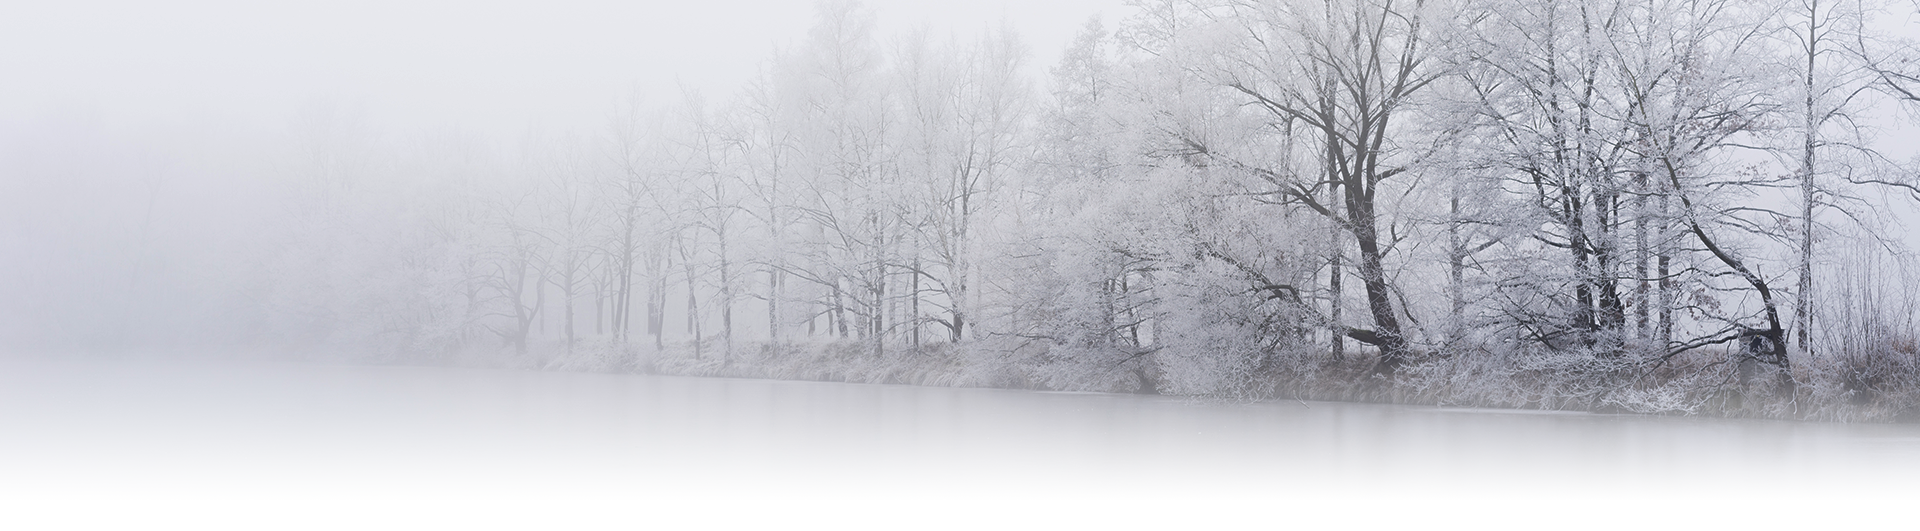 Photography Tips for Perfect Snowy Photos: White-out conditions